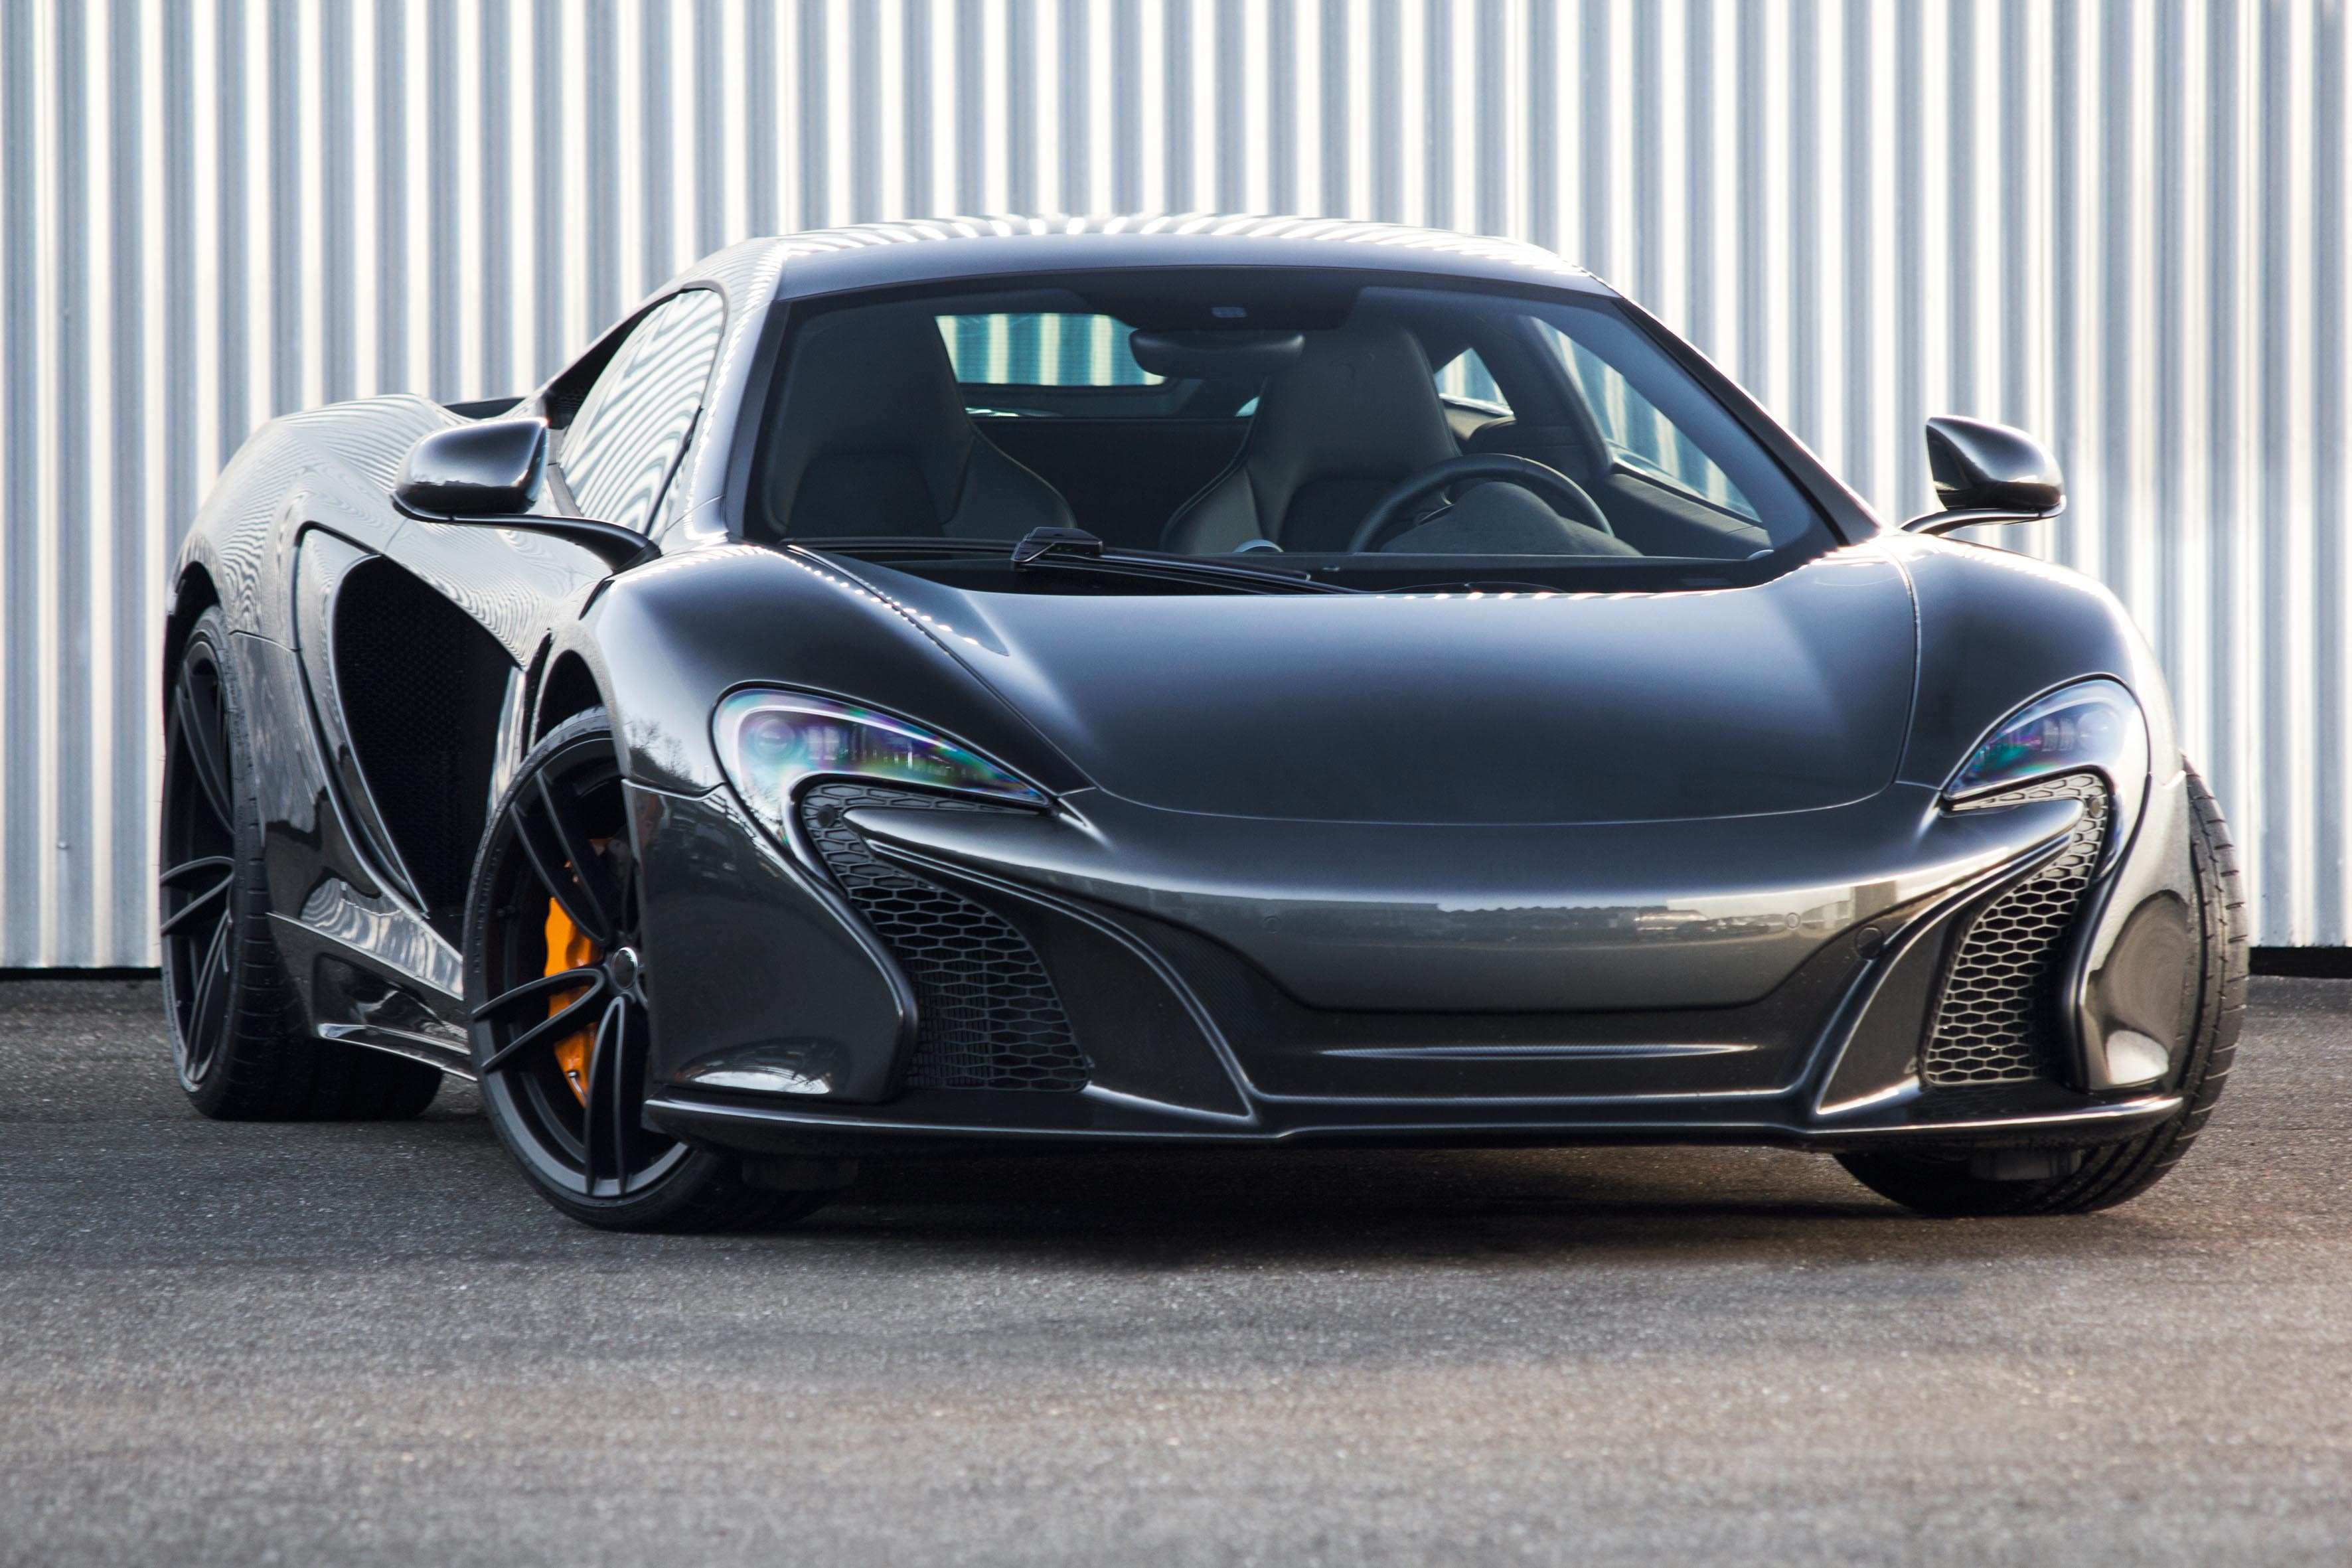 A Made in Germany McLaren 650S? Meet the The Lighter, Faster Gemballa GT